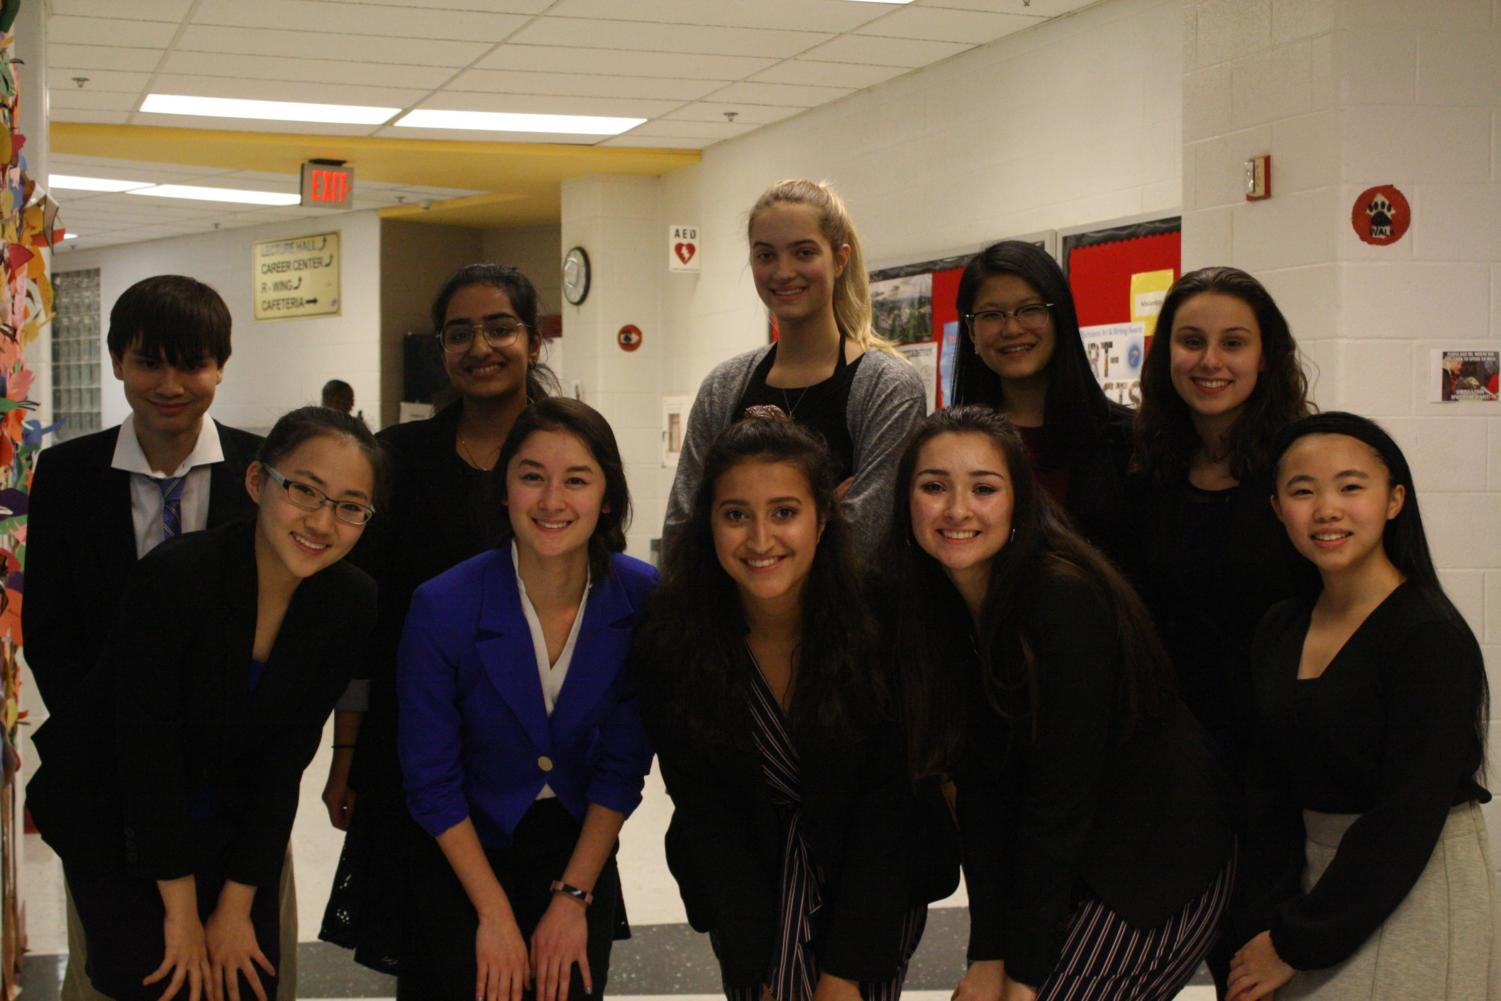 Speech team members gathered for a group photo.